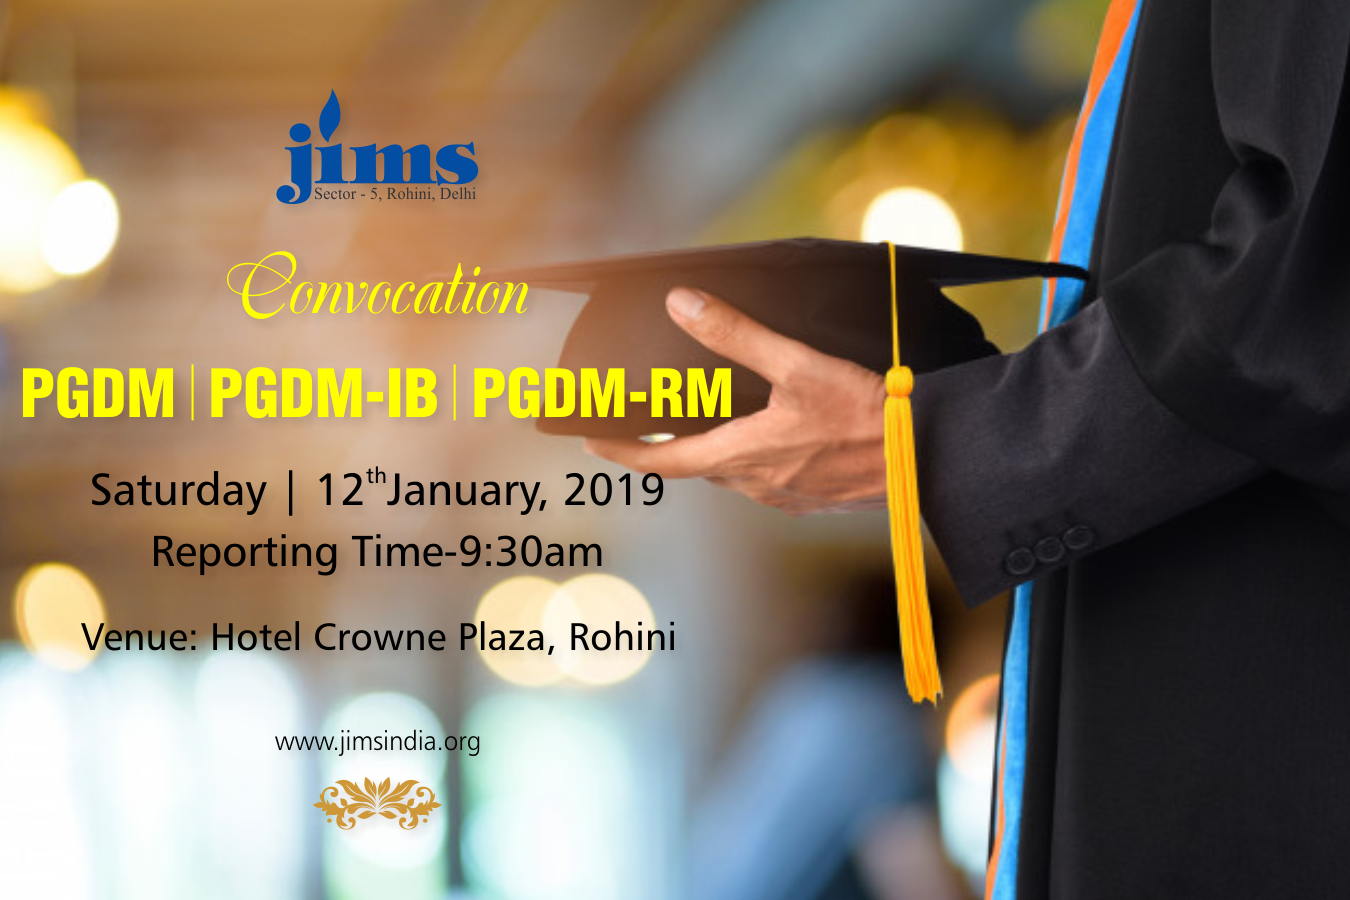 Convocation for PGDM, PGDM-IB & PGDM-RM Batch 2016-2018 on Saturday, 12th January, 2019 9:30 AM Onwards